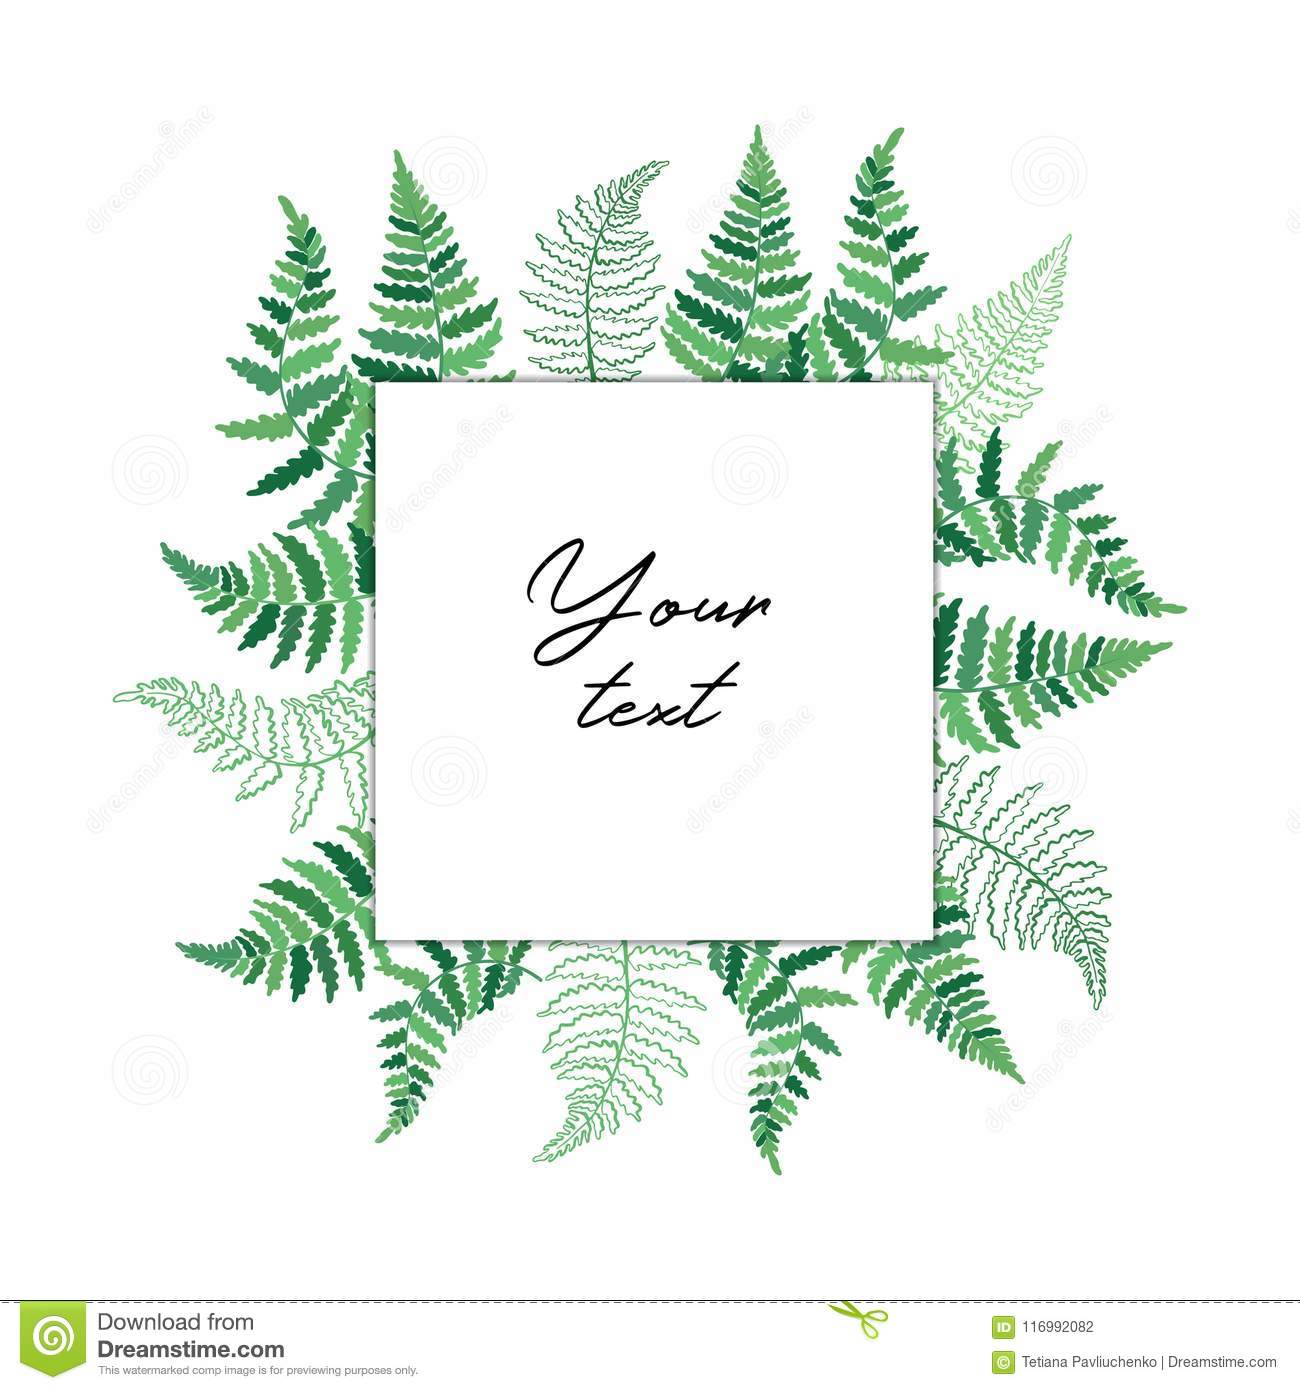 Vector Template Illustration With Fern Leaf Isolated Outline Drawing Modern Of Tropical Plant Card Exotic Leaves Silhouettes